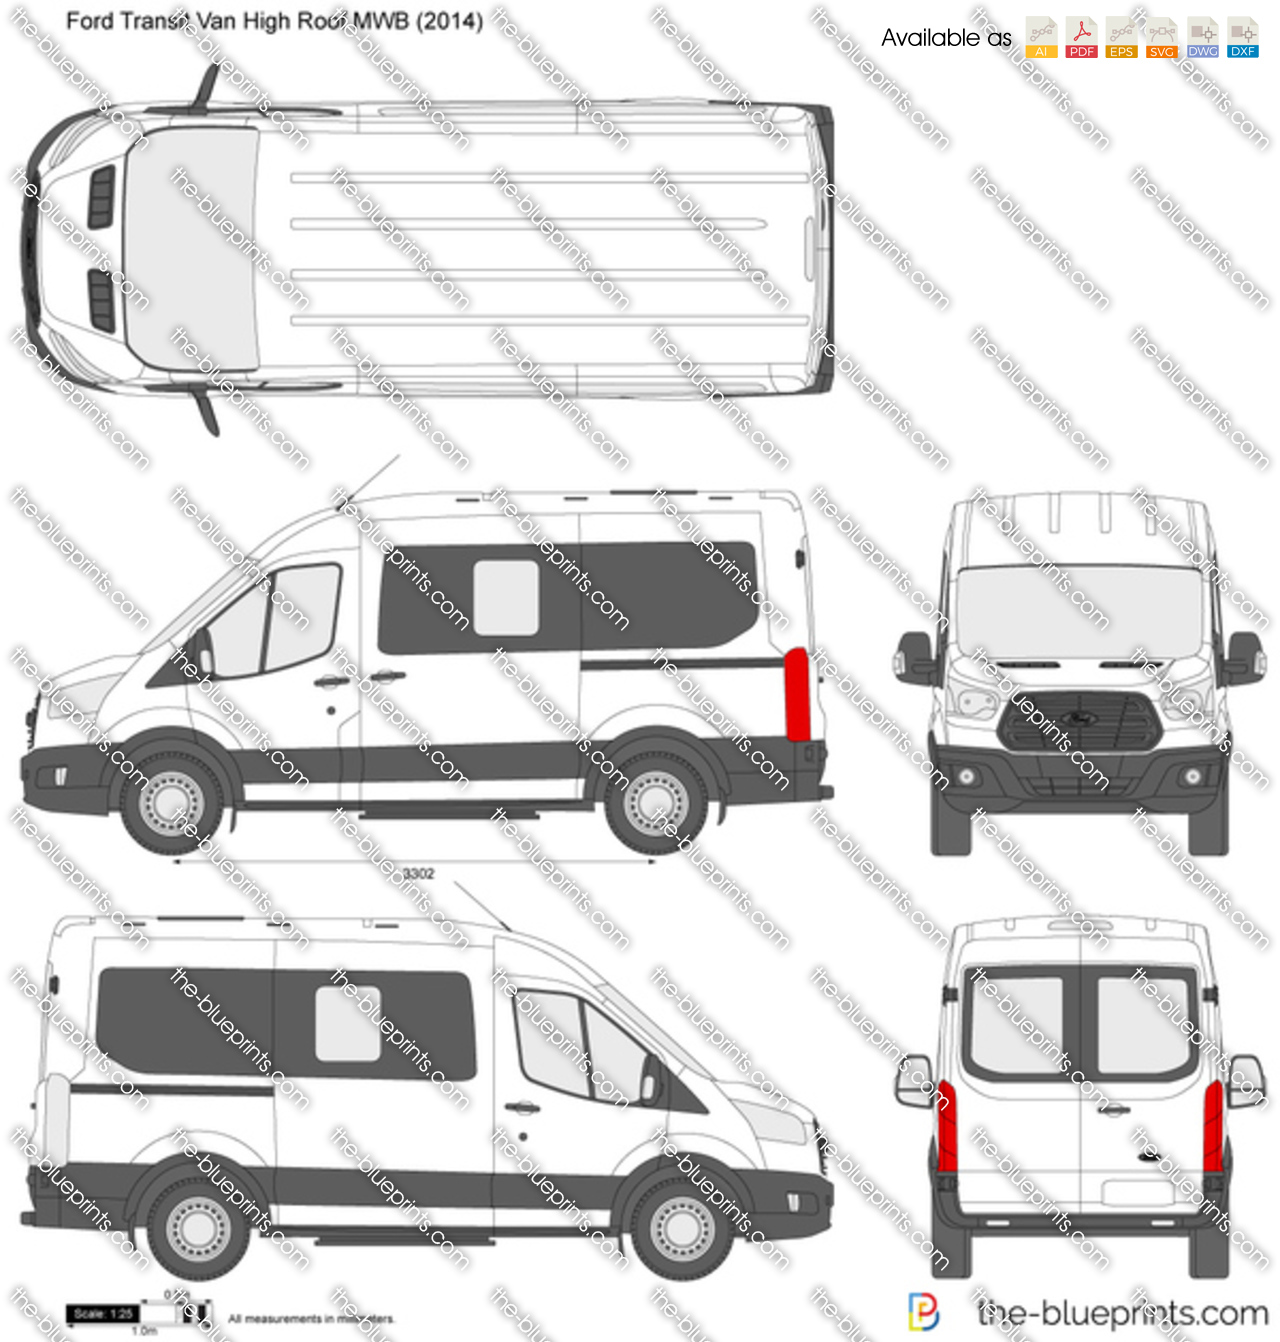 Ford Transit Van High Roof MWB